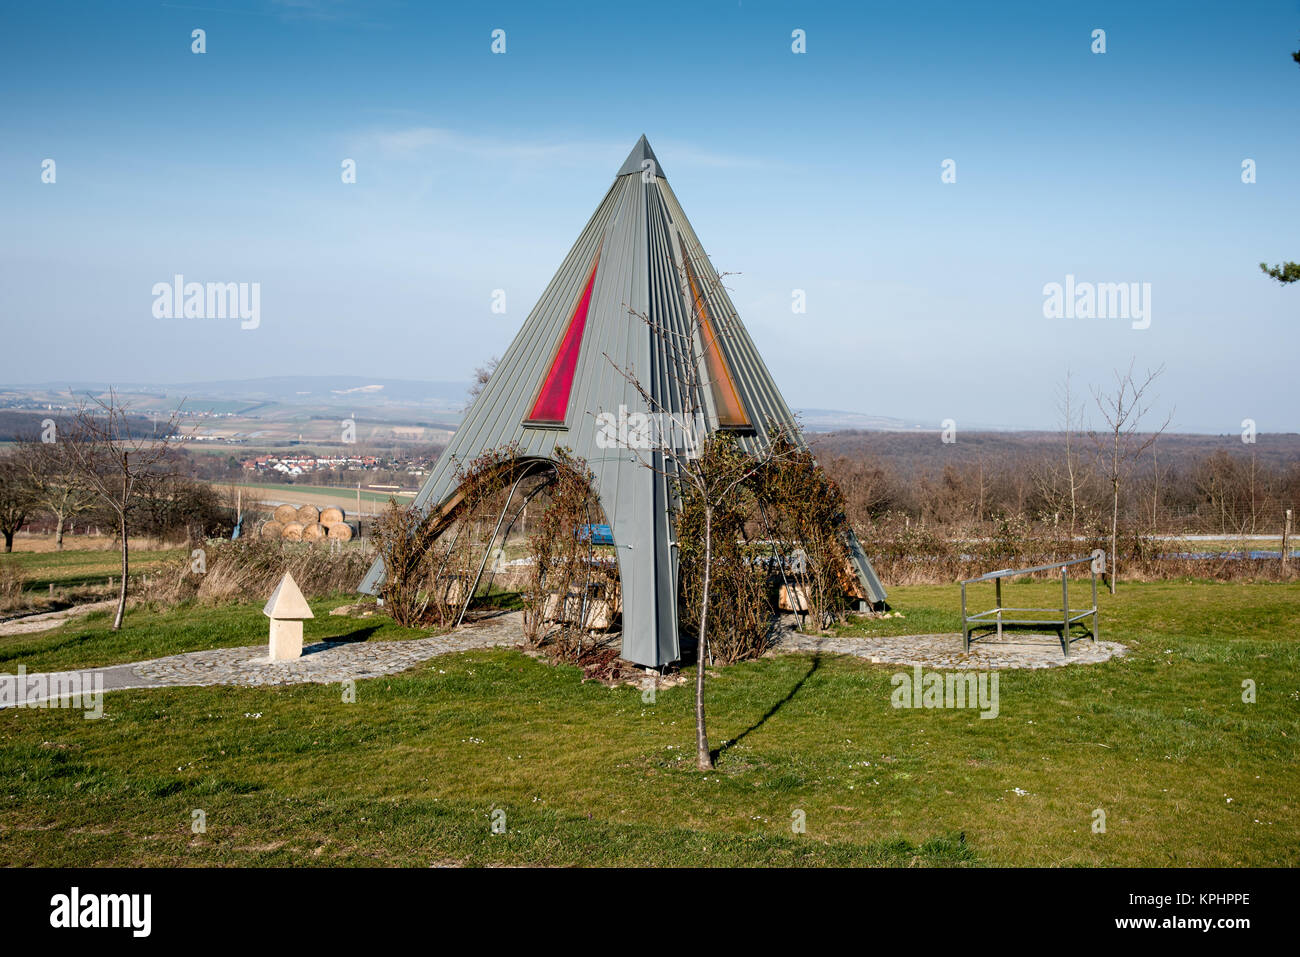 Pyramidal shaped shelter on a cycle trail. Picture taken near the village of Bad Sauerbrunn in the Rosalia region Stock Photo